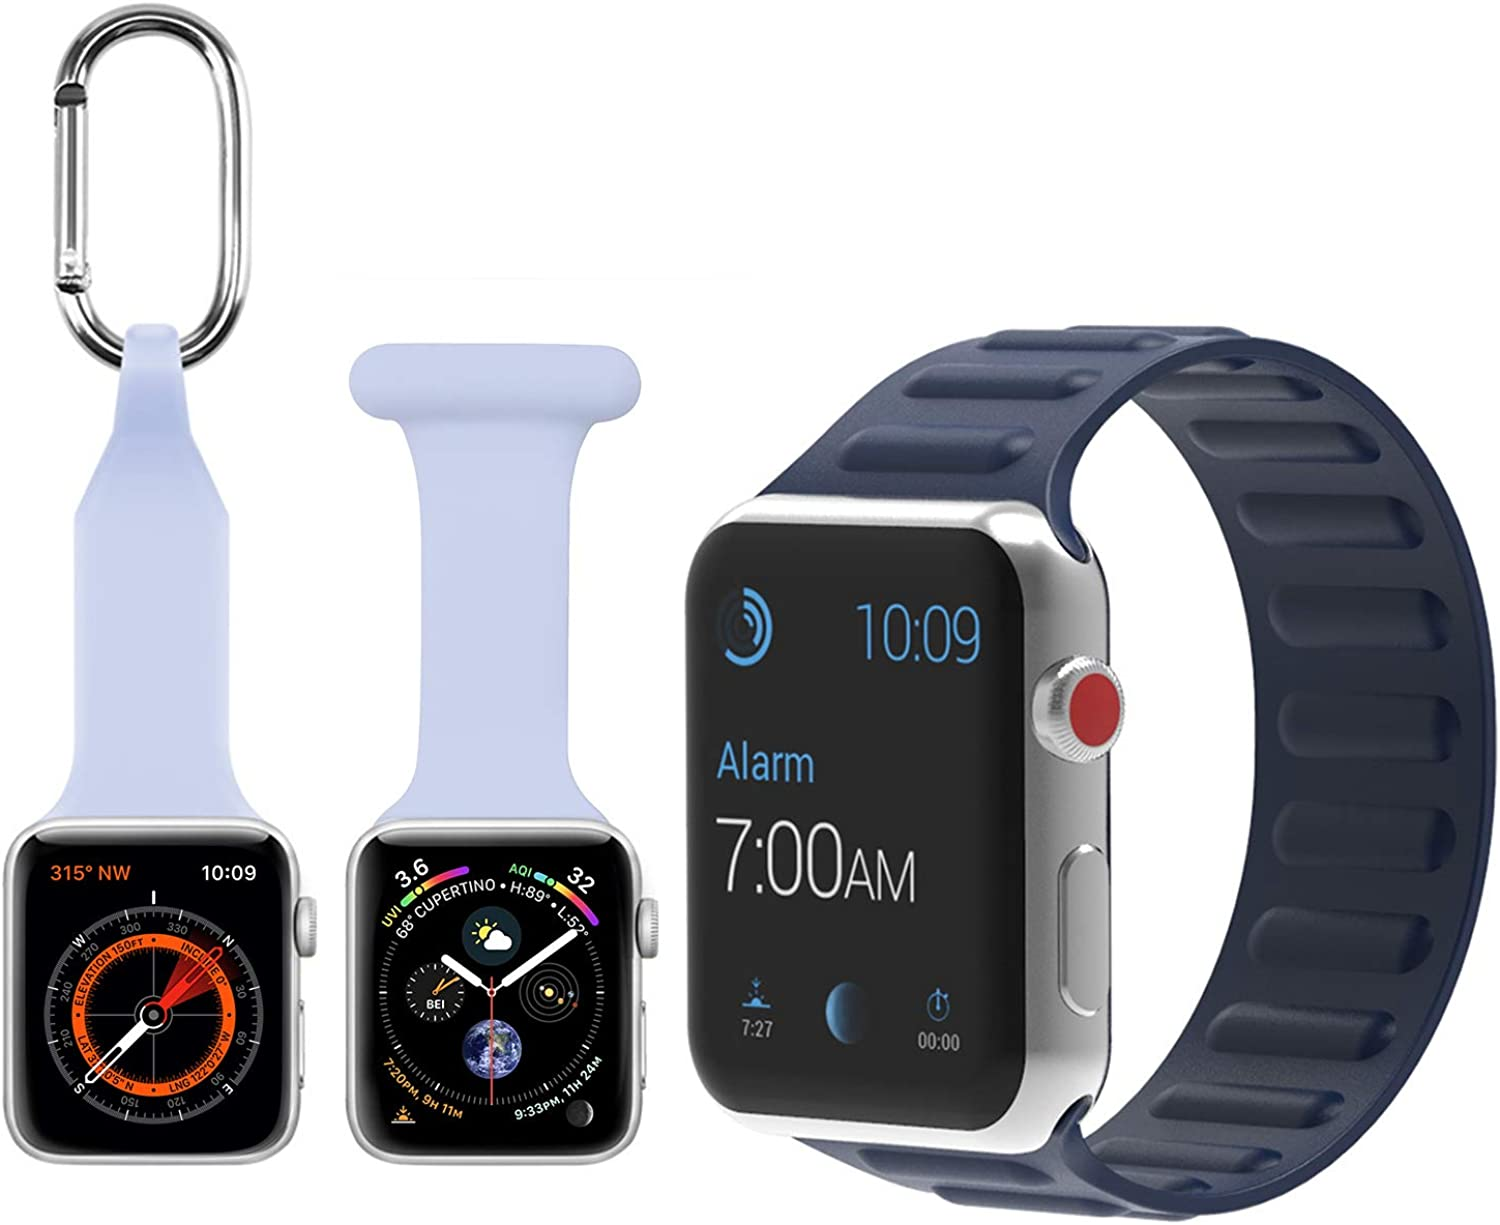 Apple Watch Band, Solo Loop iWatch Band, Nurse Apple Watch Band, Carabiner Clip for Apple Watch, Silicone watch Band for Apple Watch Series SE 6 5 4 3 2 1 44mm 42mm 40mm 38mm 3 Pack for Women Men